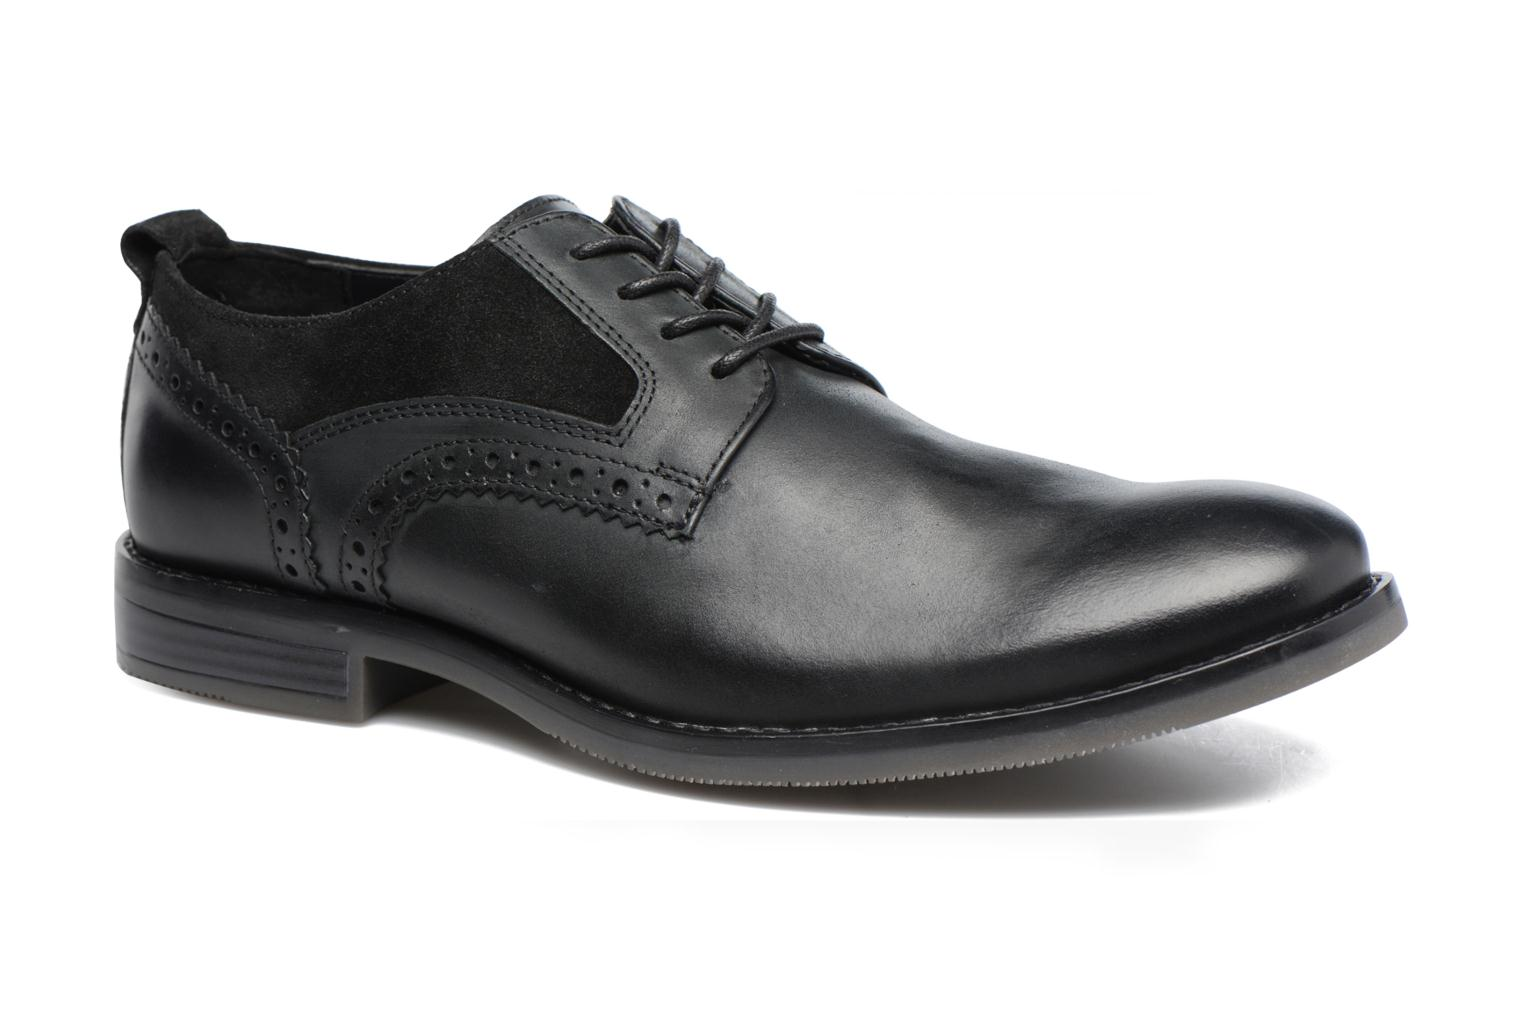 Wynstin Plain Toe Black